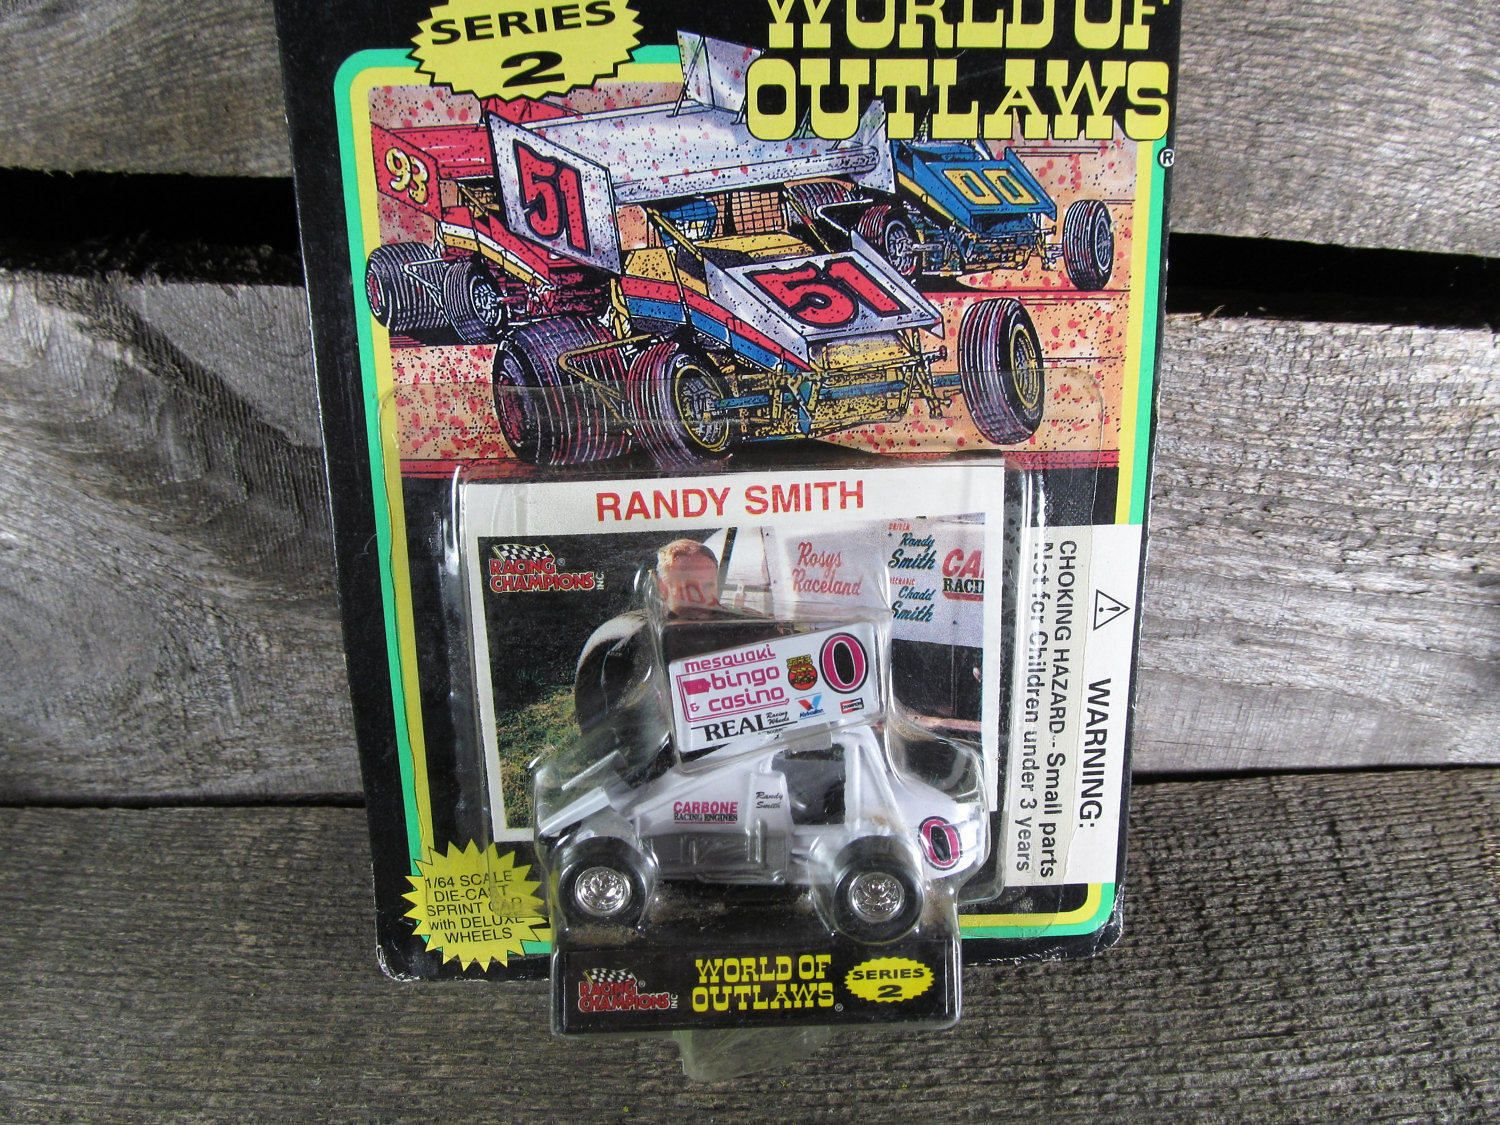 Randy Smith #0, Racing Champions, World Of Outlaws, Sprint